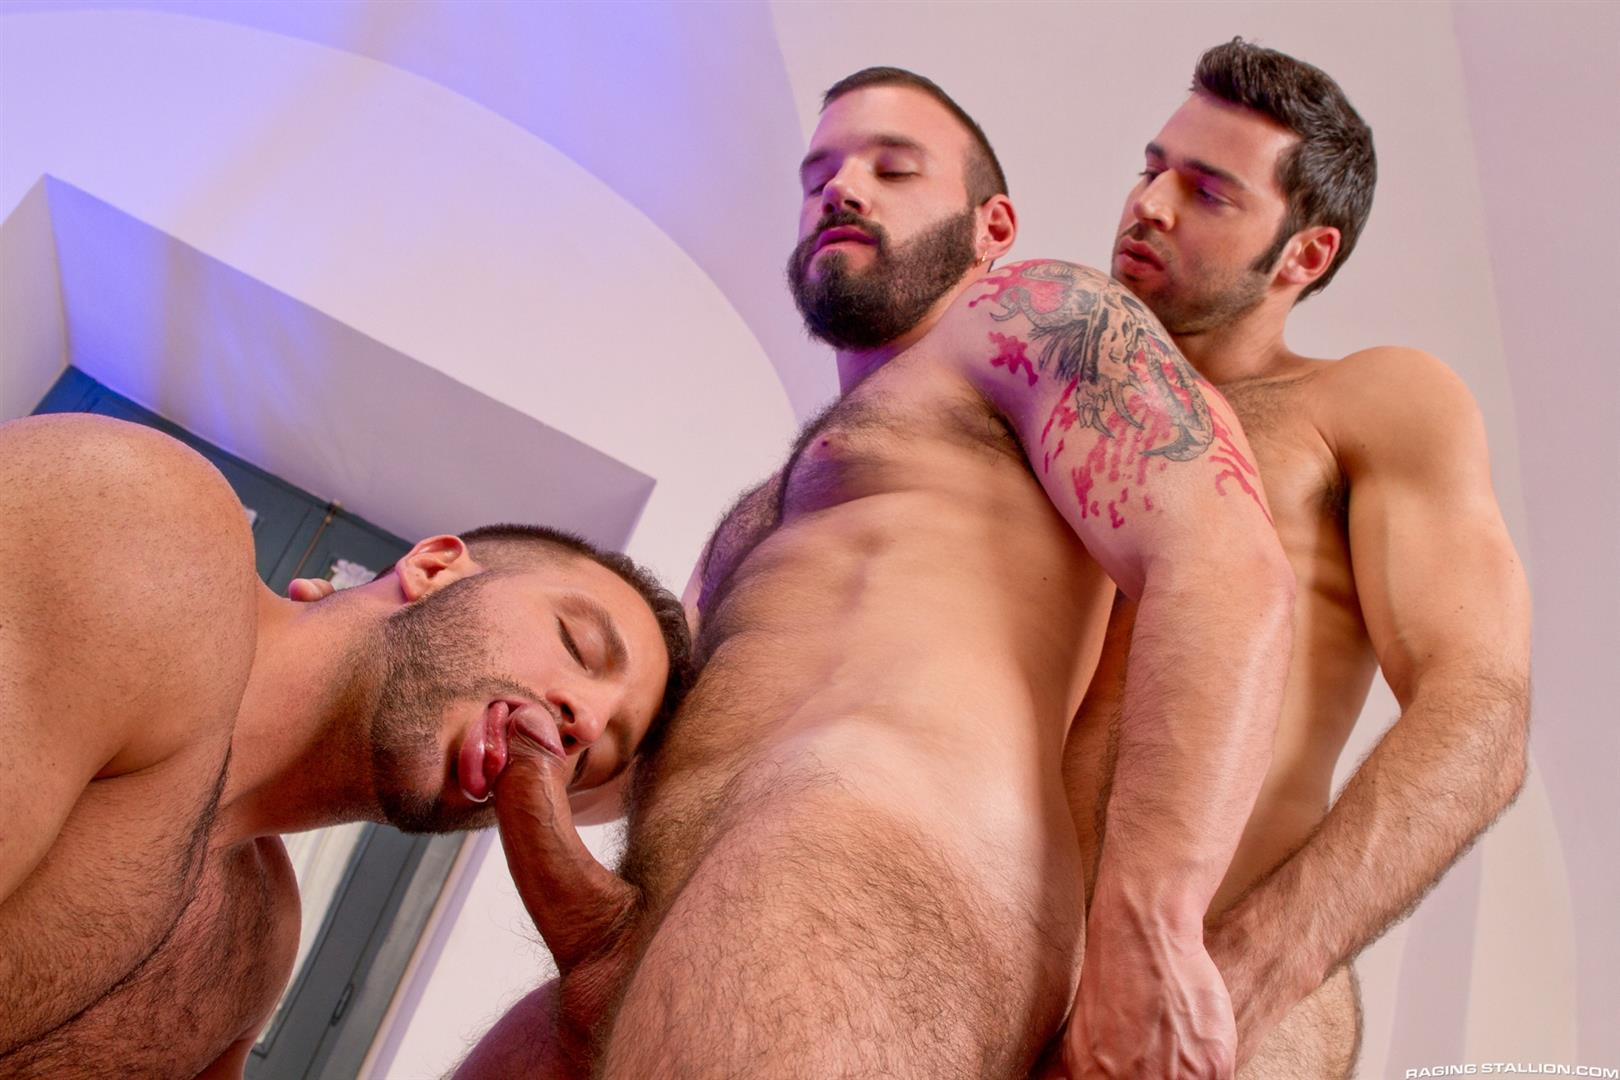 New Gay Bear Porn free videos sexy hunky gay bears . naked photo. comments: 1